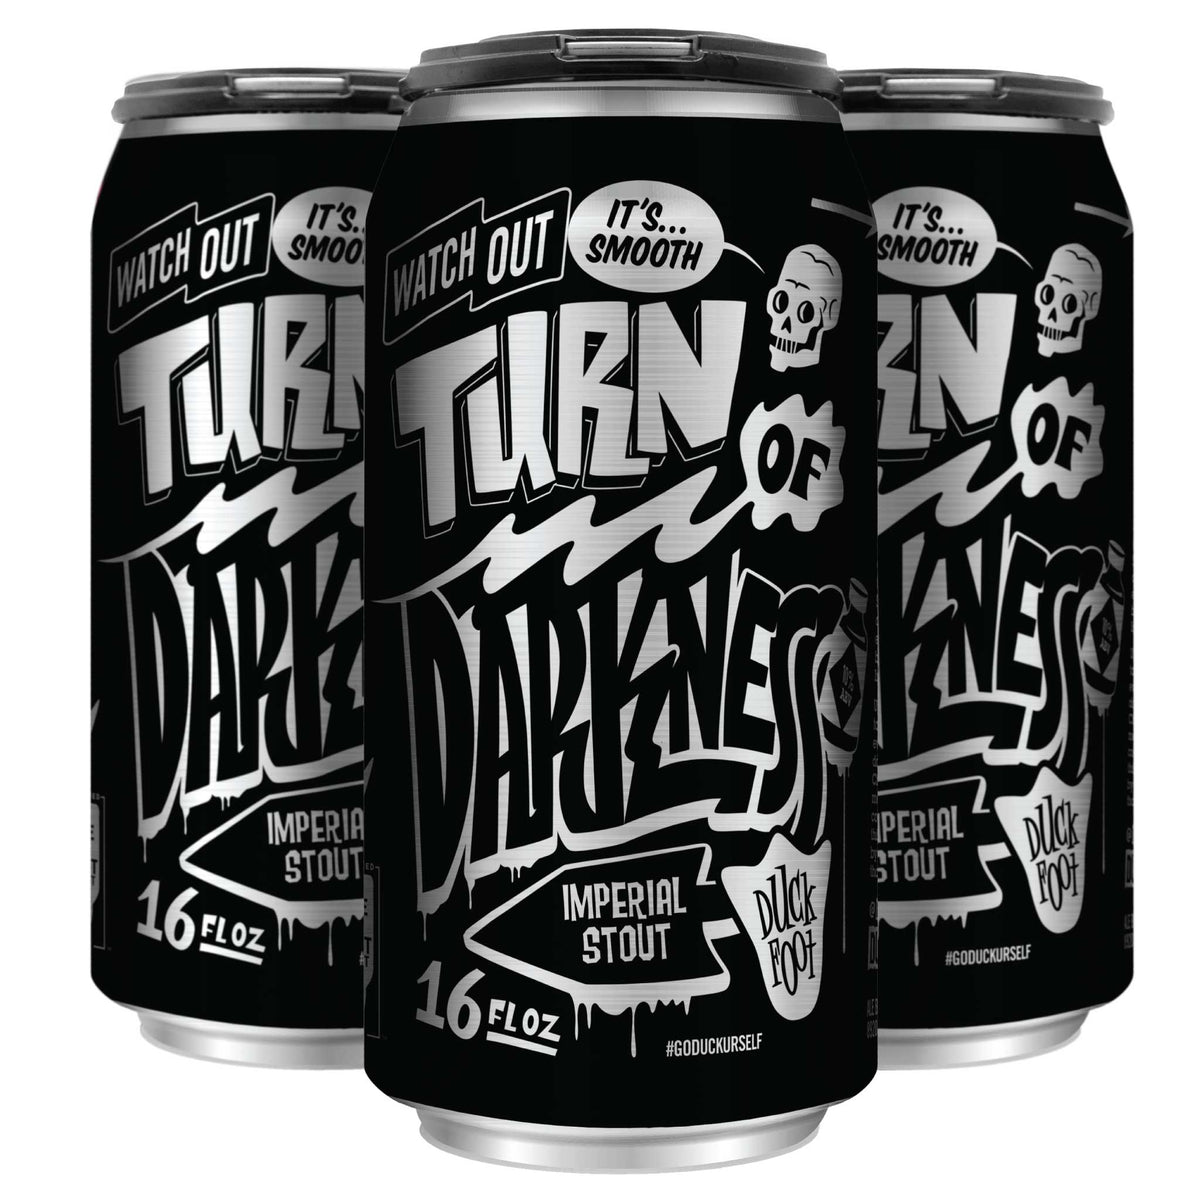 Turn of Darkness - Imperial Stout (4-pack)